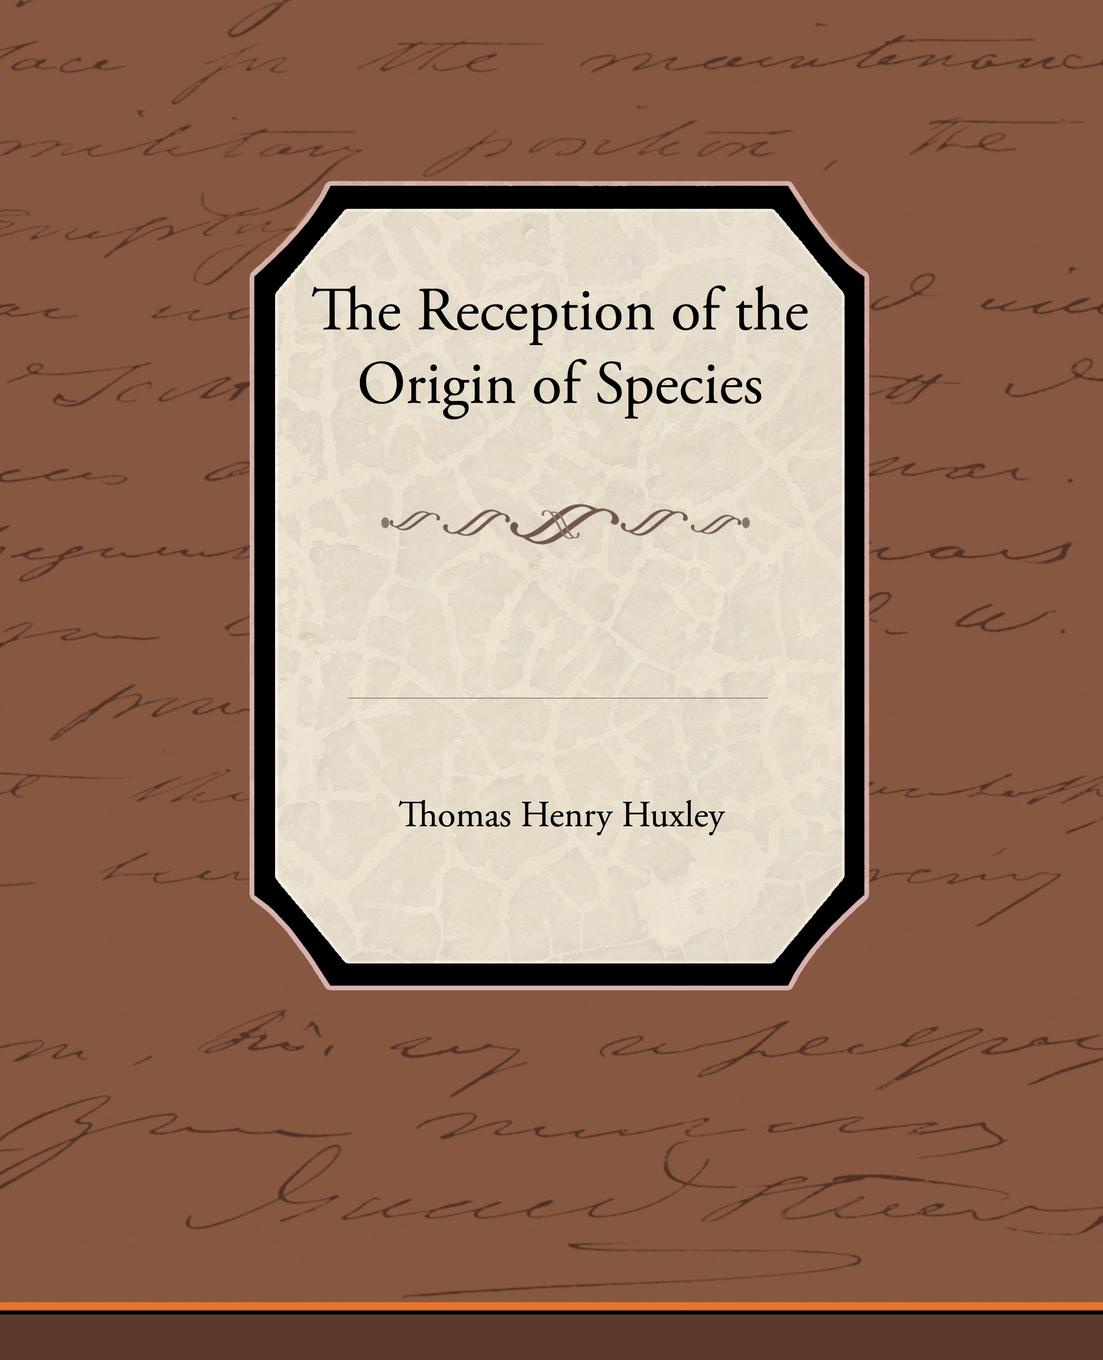 Thomas Henry Huxley The Reception of the Origin of Species